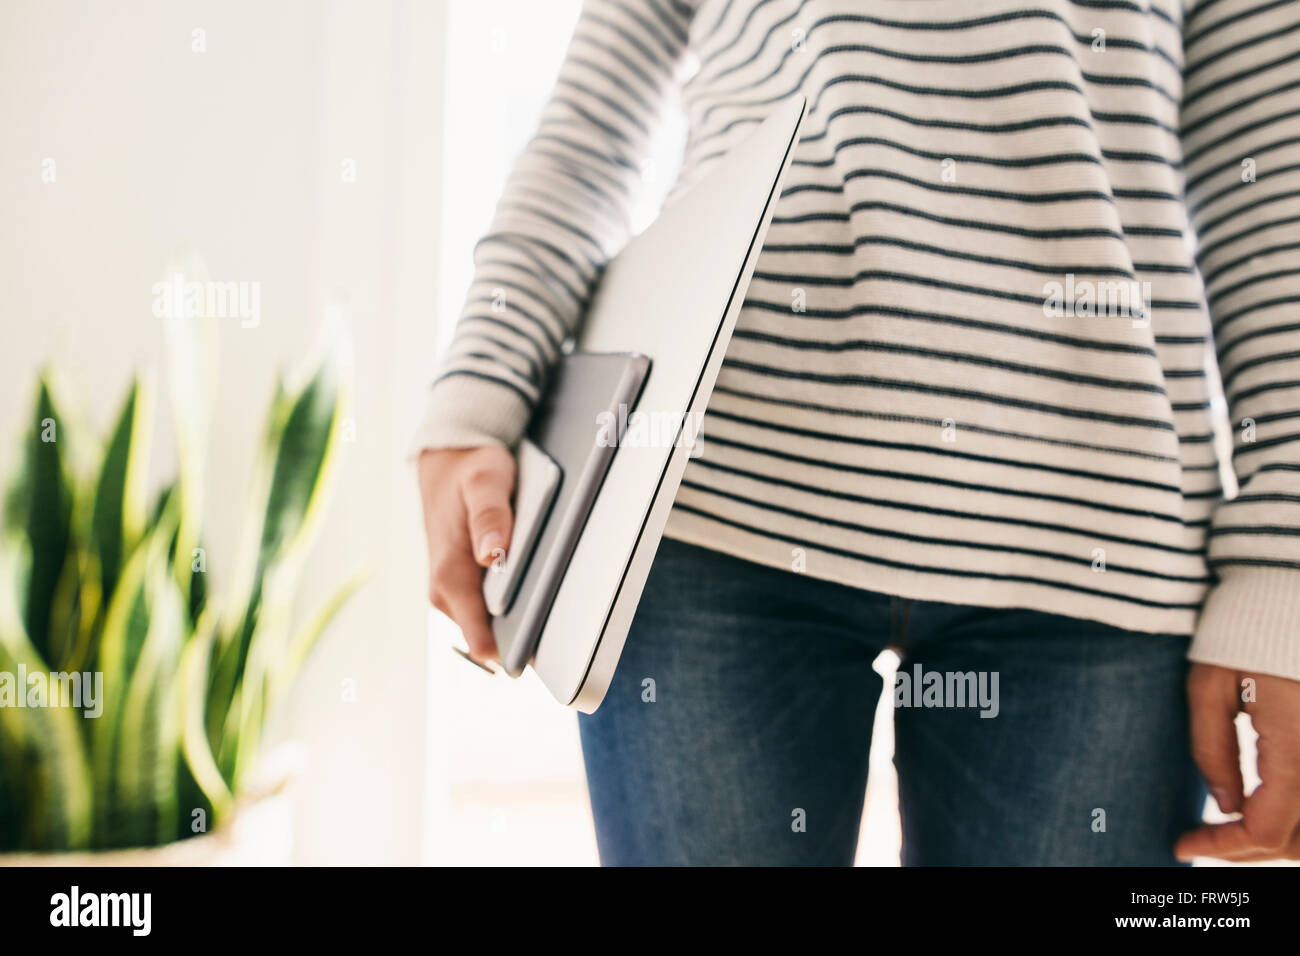 Woman holding portable devices in different sizes - Stock Image